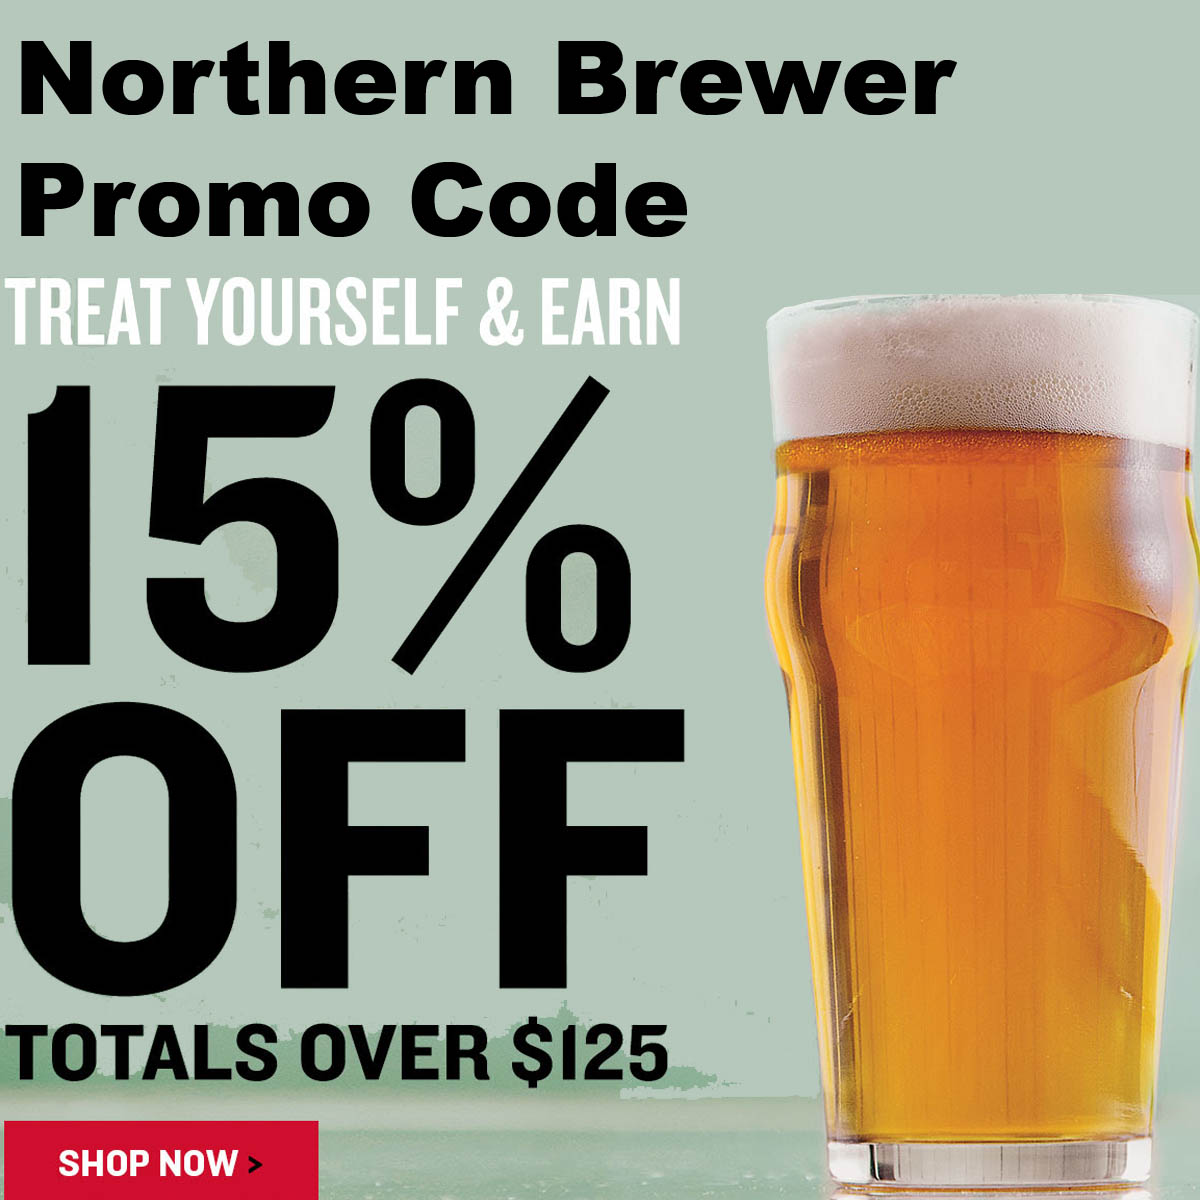 Home Wine Making Coupon Codes for Save 15% Off Orders Over $125 With This NorthernBrewer.com Promo Code Coupon Code